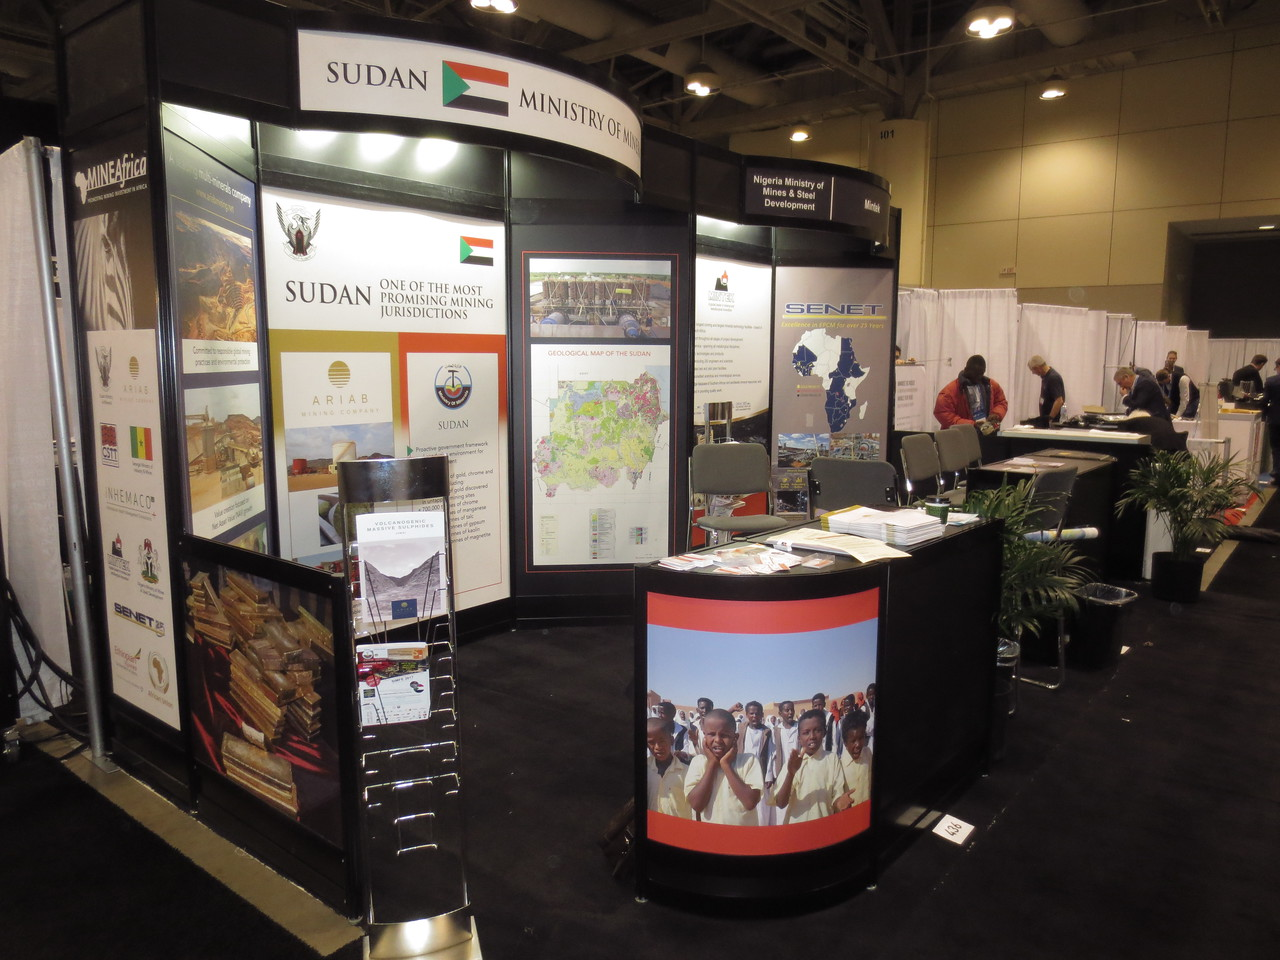 Sudan Ministry of Minerals and Ariab Mining Company